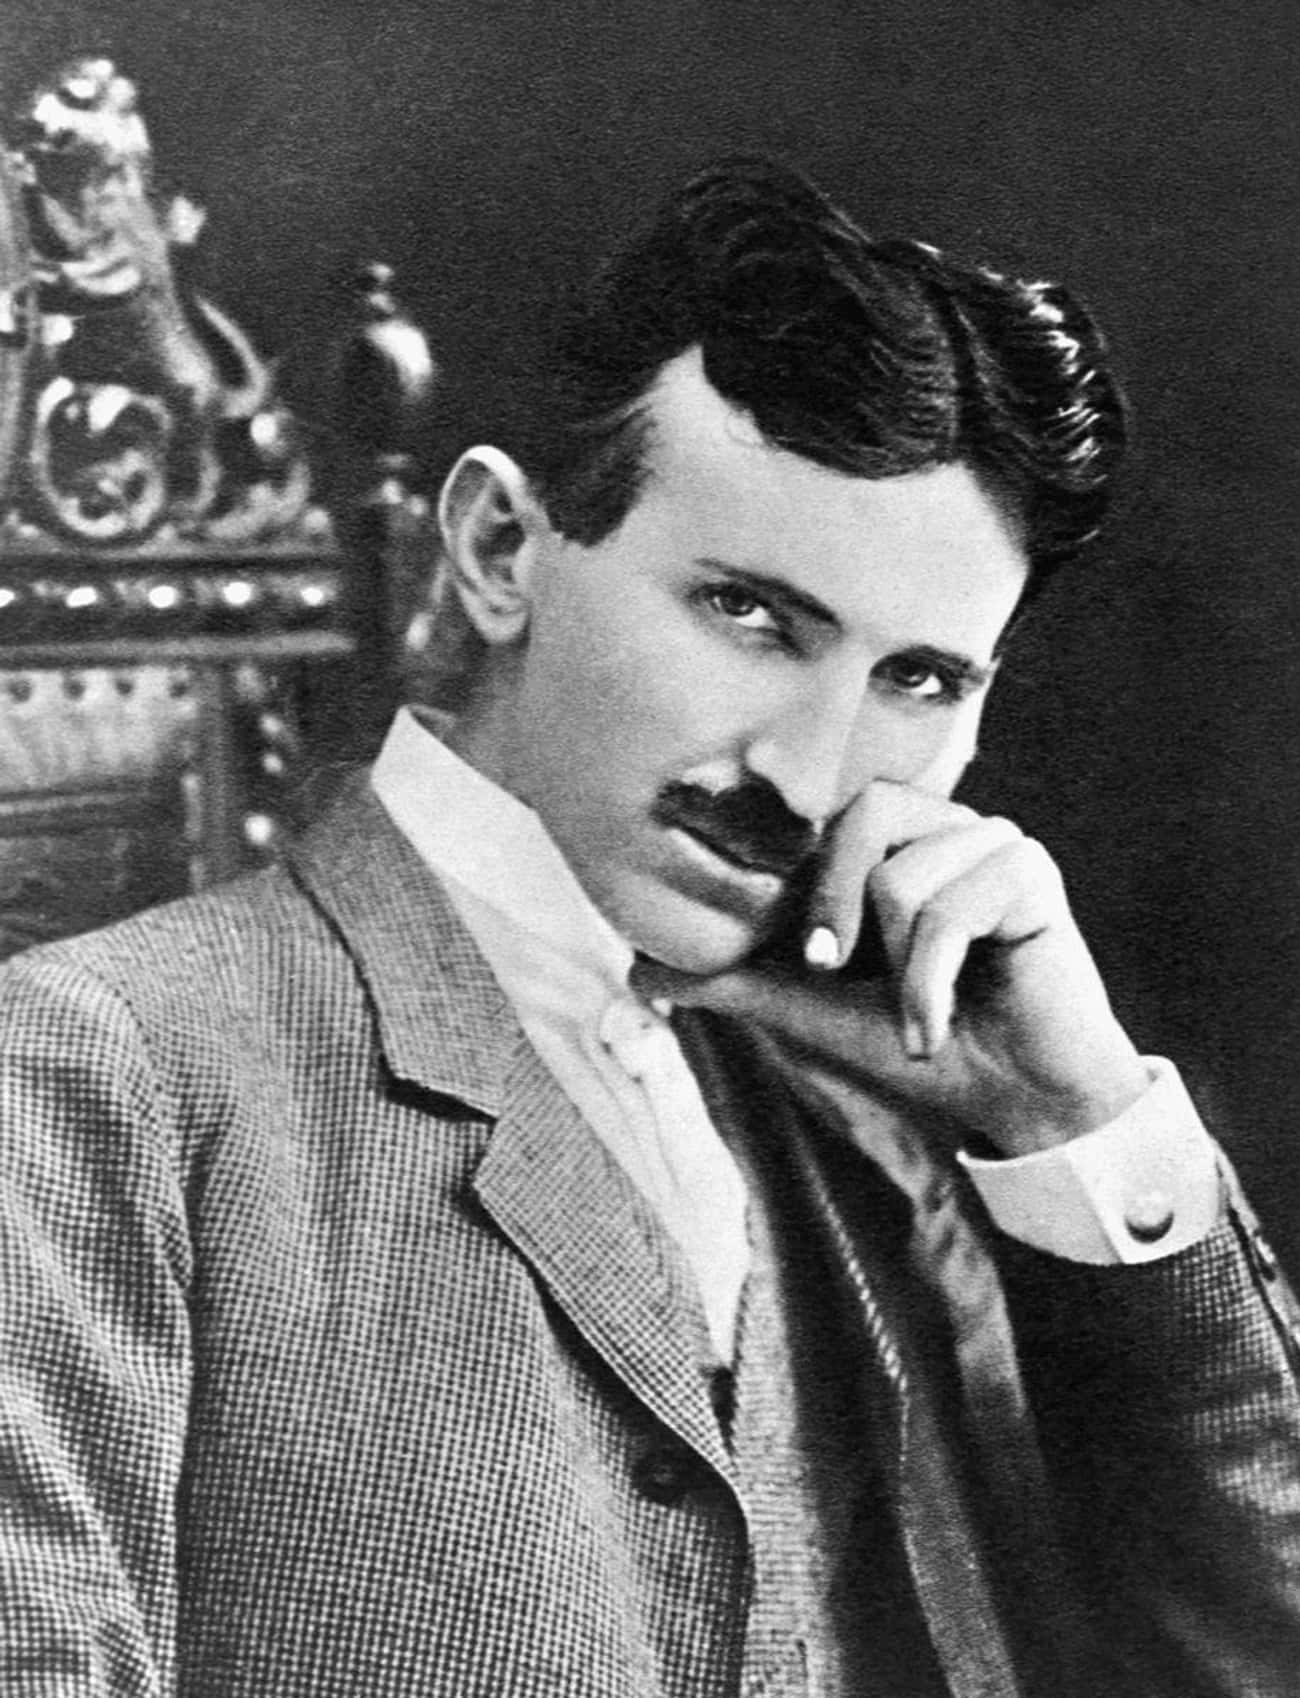 Nikola Tesla Predicted Smart Phones With Extreme Accuracy Nearly 100 Years Before Their Inception